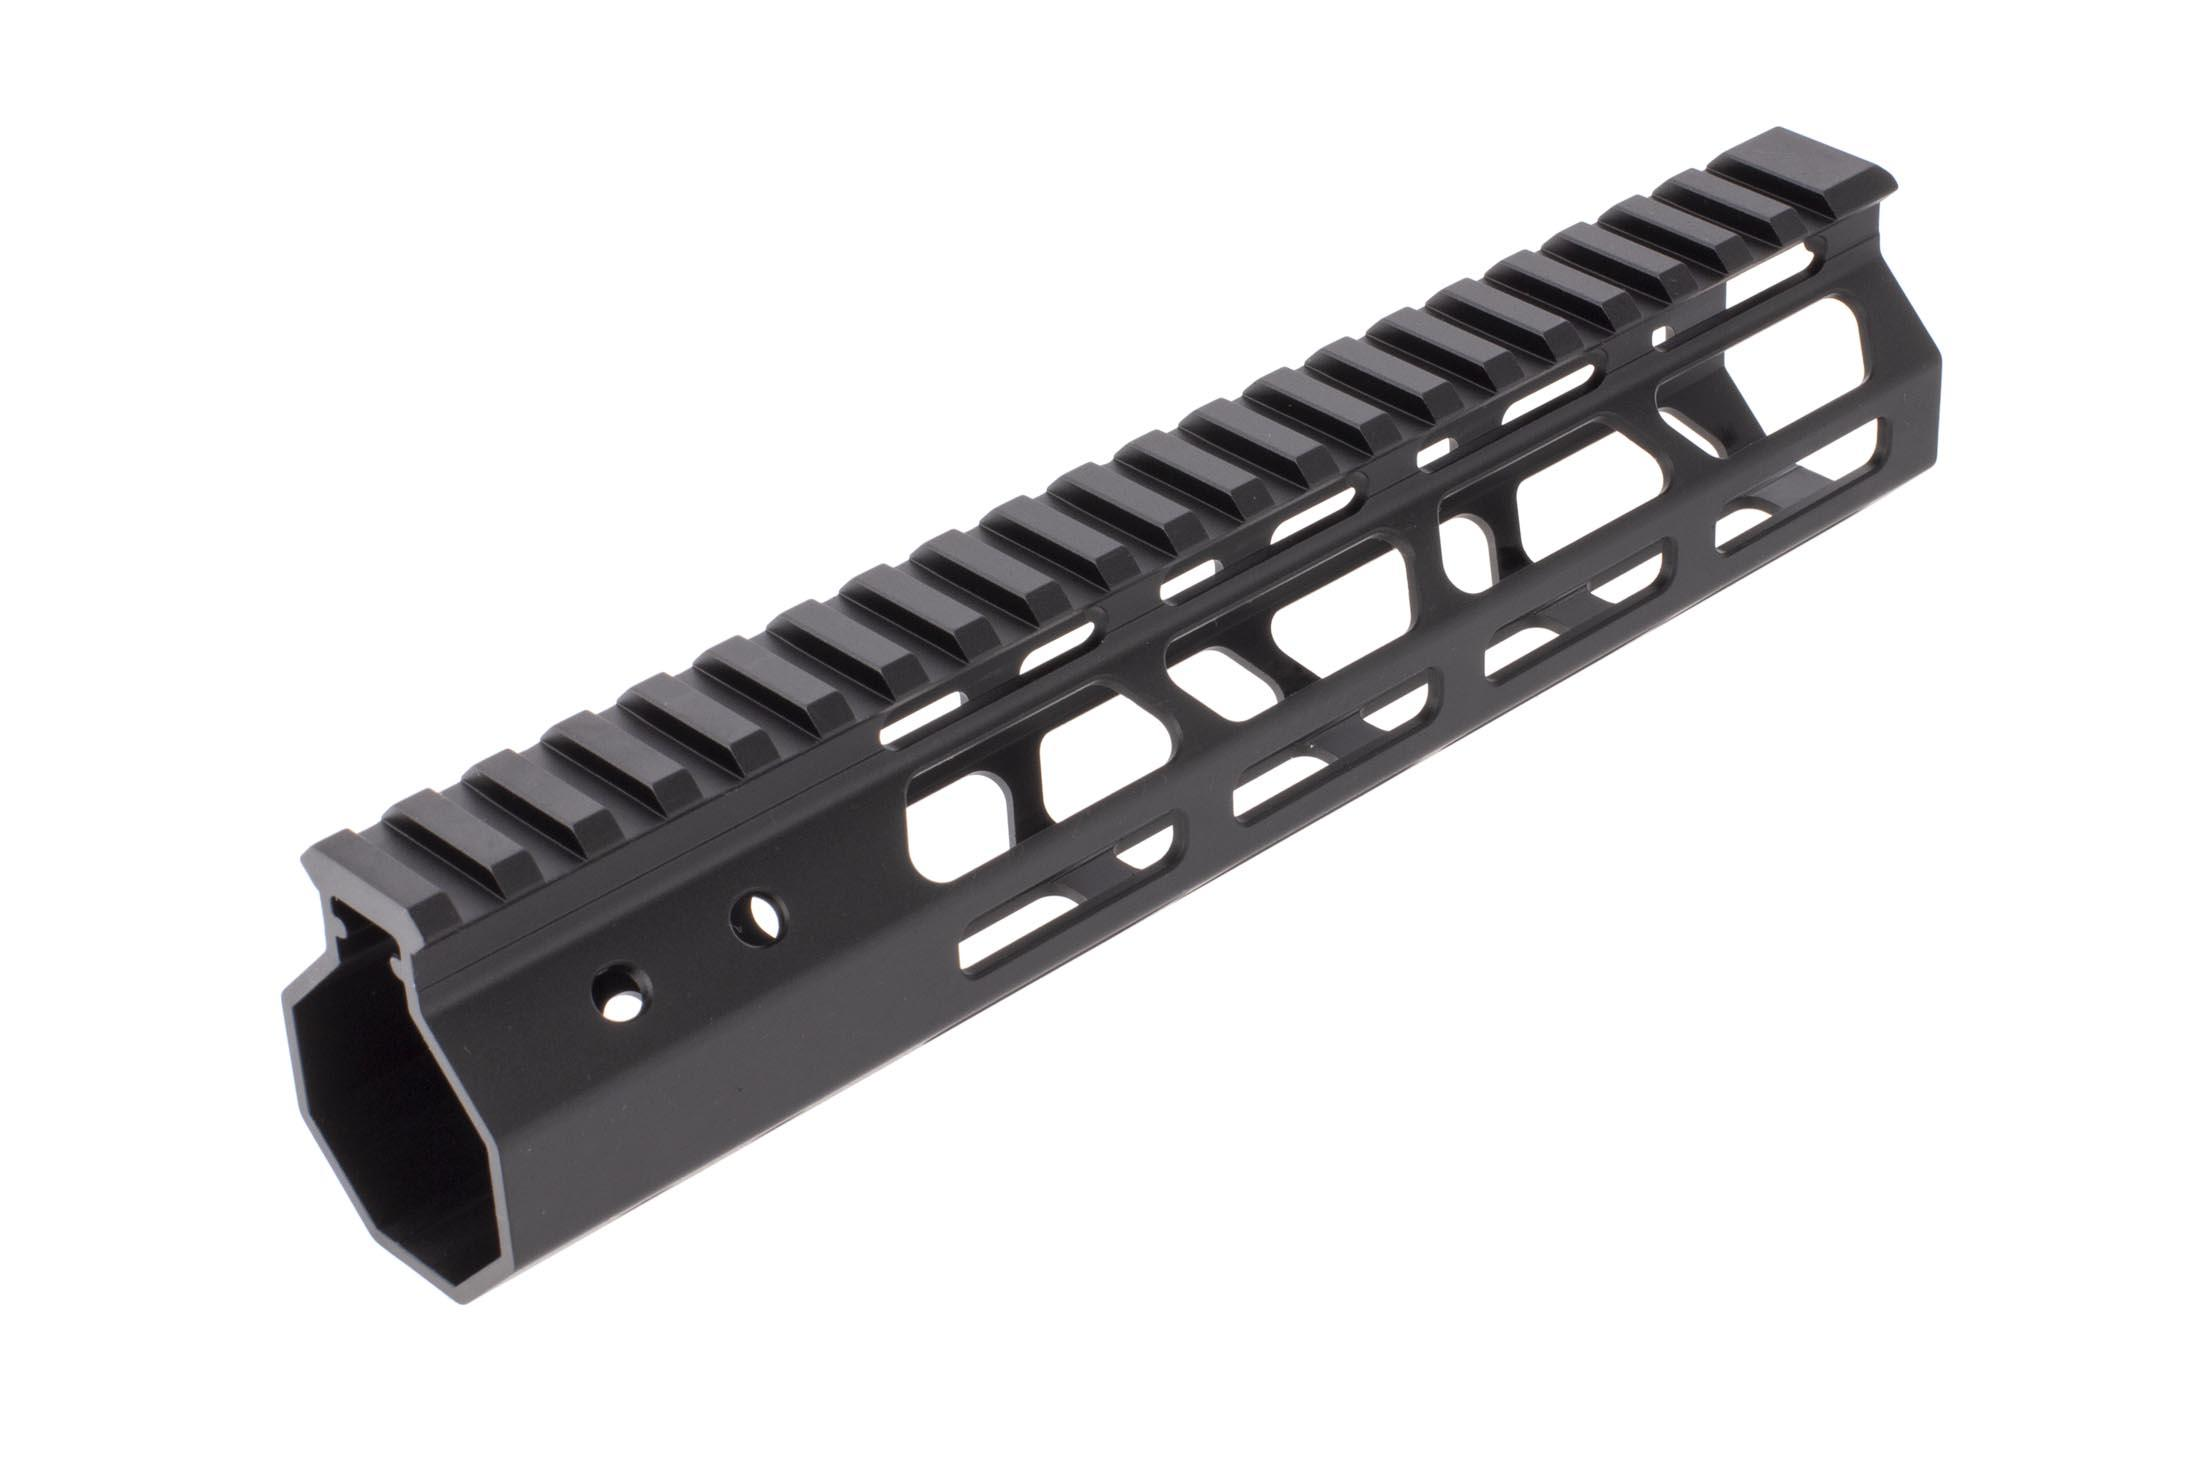 FM Products free float 10.5in ultra light AR15 M-LOK rail features a full length M1913 Picatinny top rail for your favorite accessories